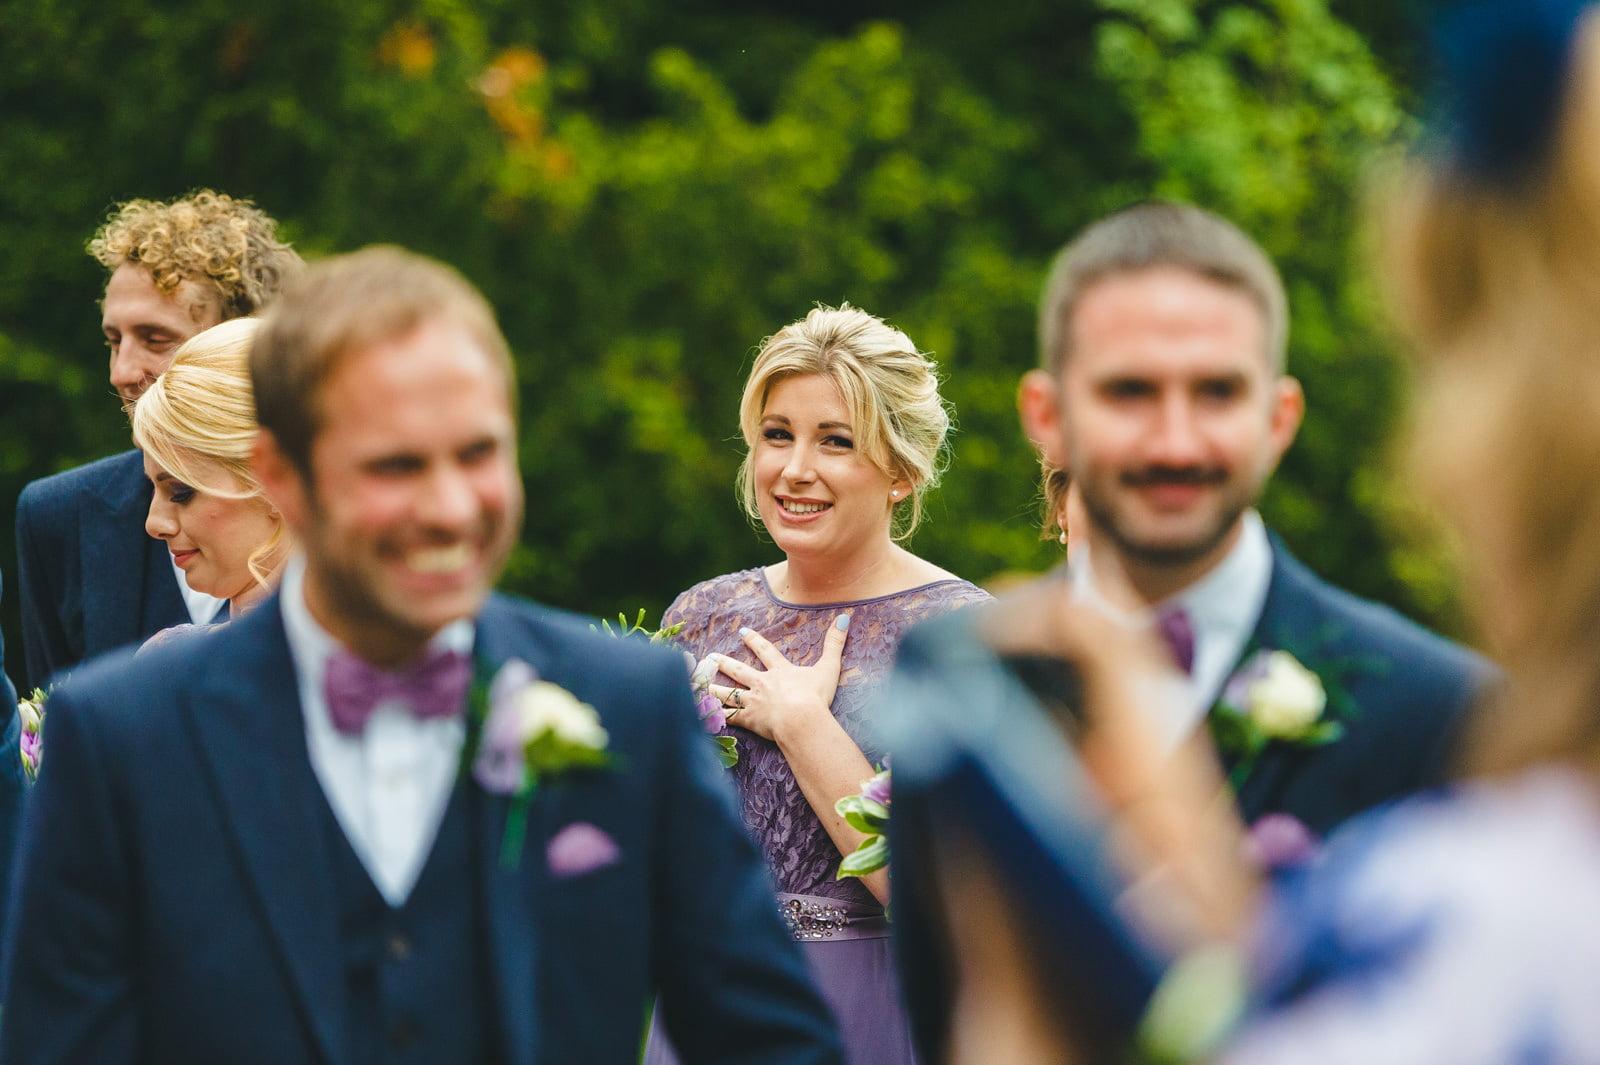 Millers Of Netley wedding, Dorrington, Shrewsbury | Emma + Ben 22